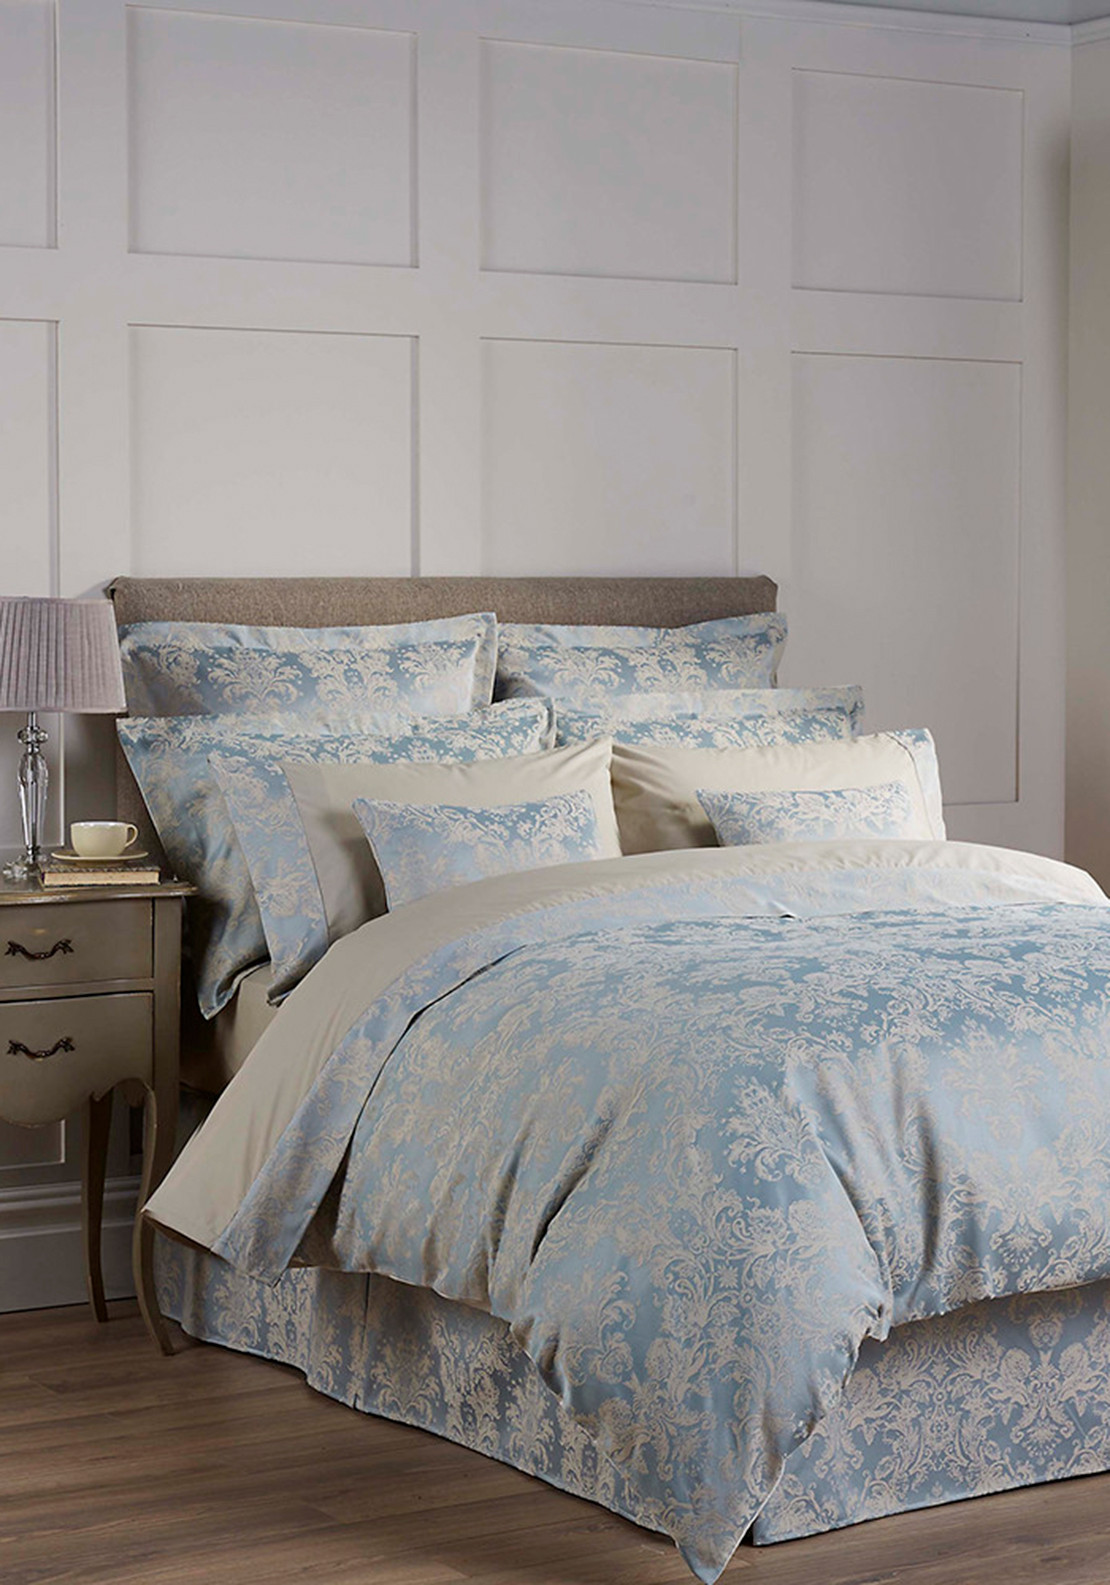 Christy Bed-Linen Collection Serena Duvet Cover